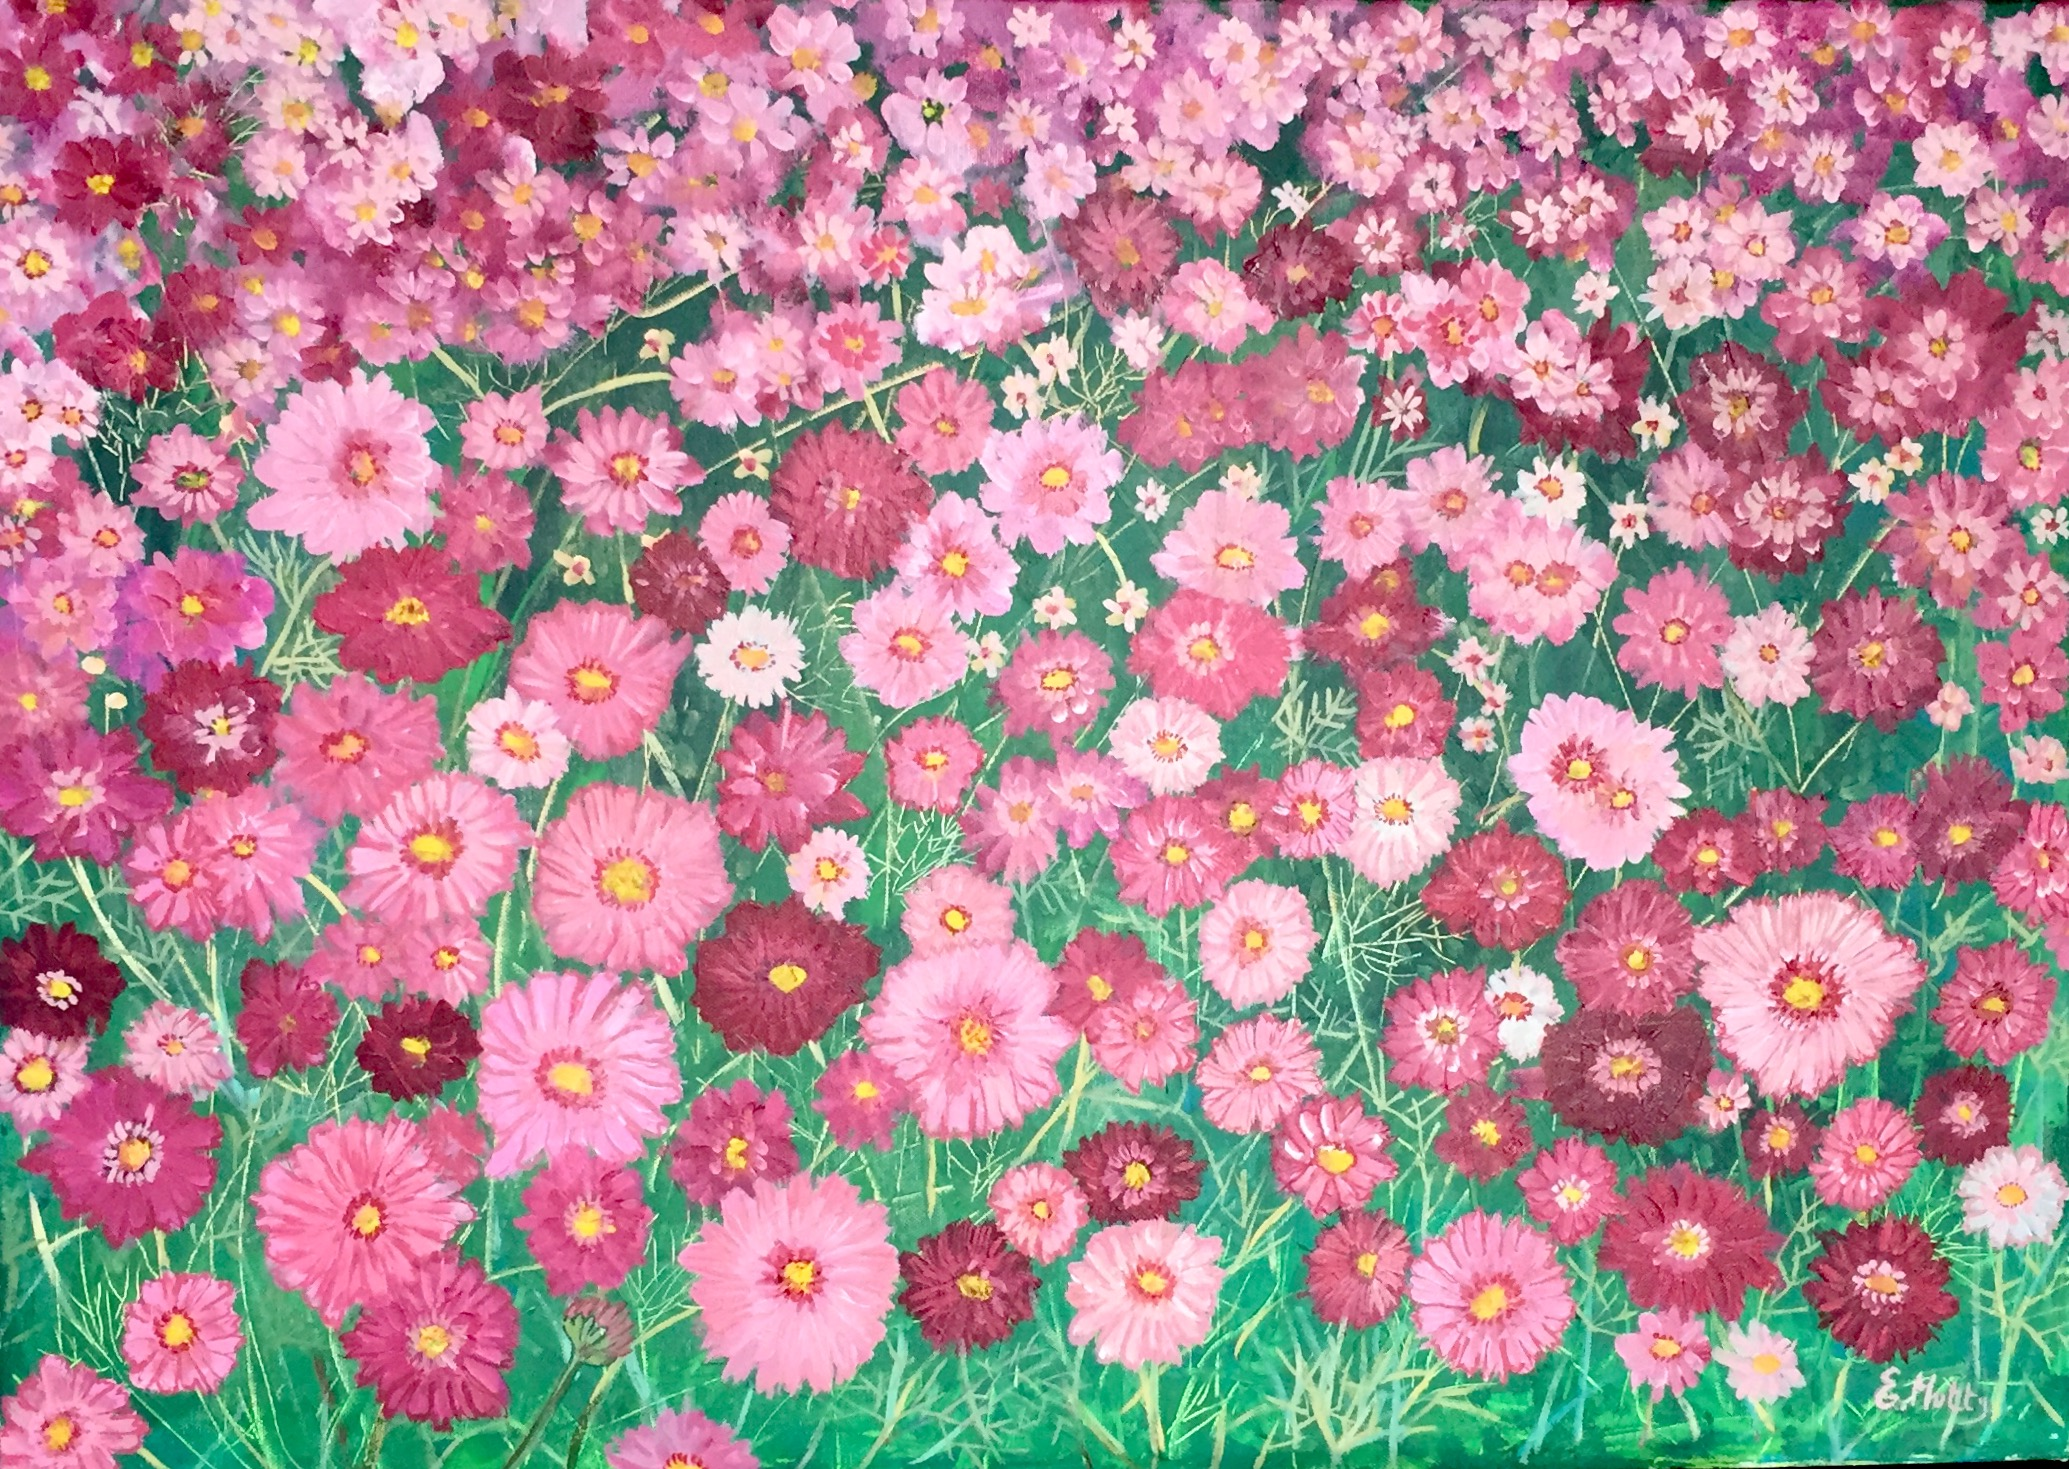 Pink Cosmos by Elisabetta Mutty at the Saffron Walden Gallery